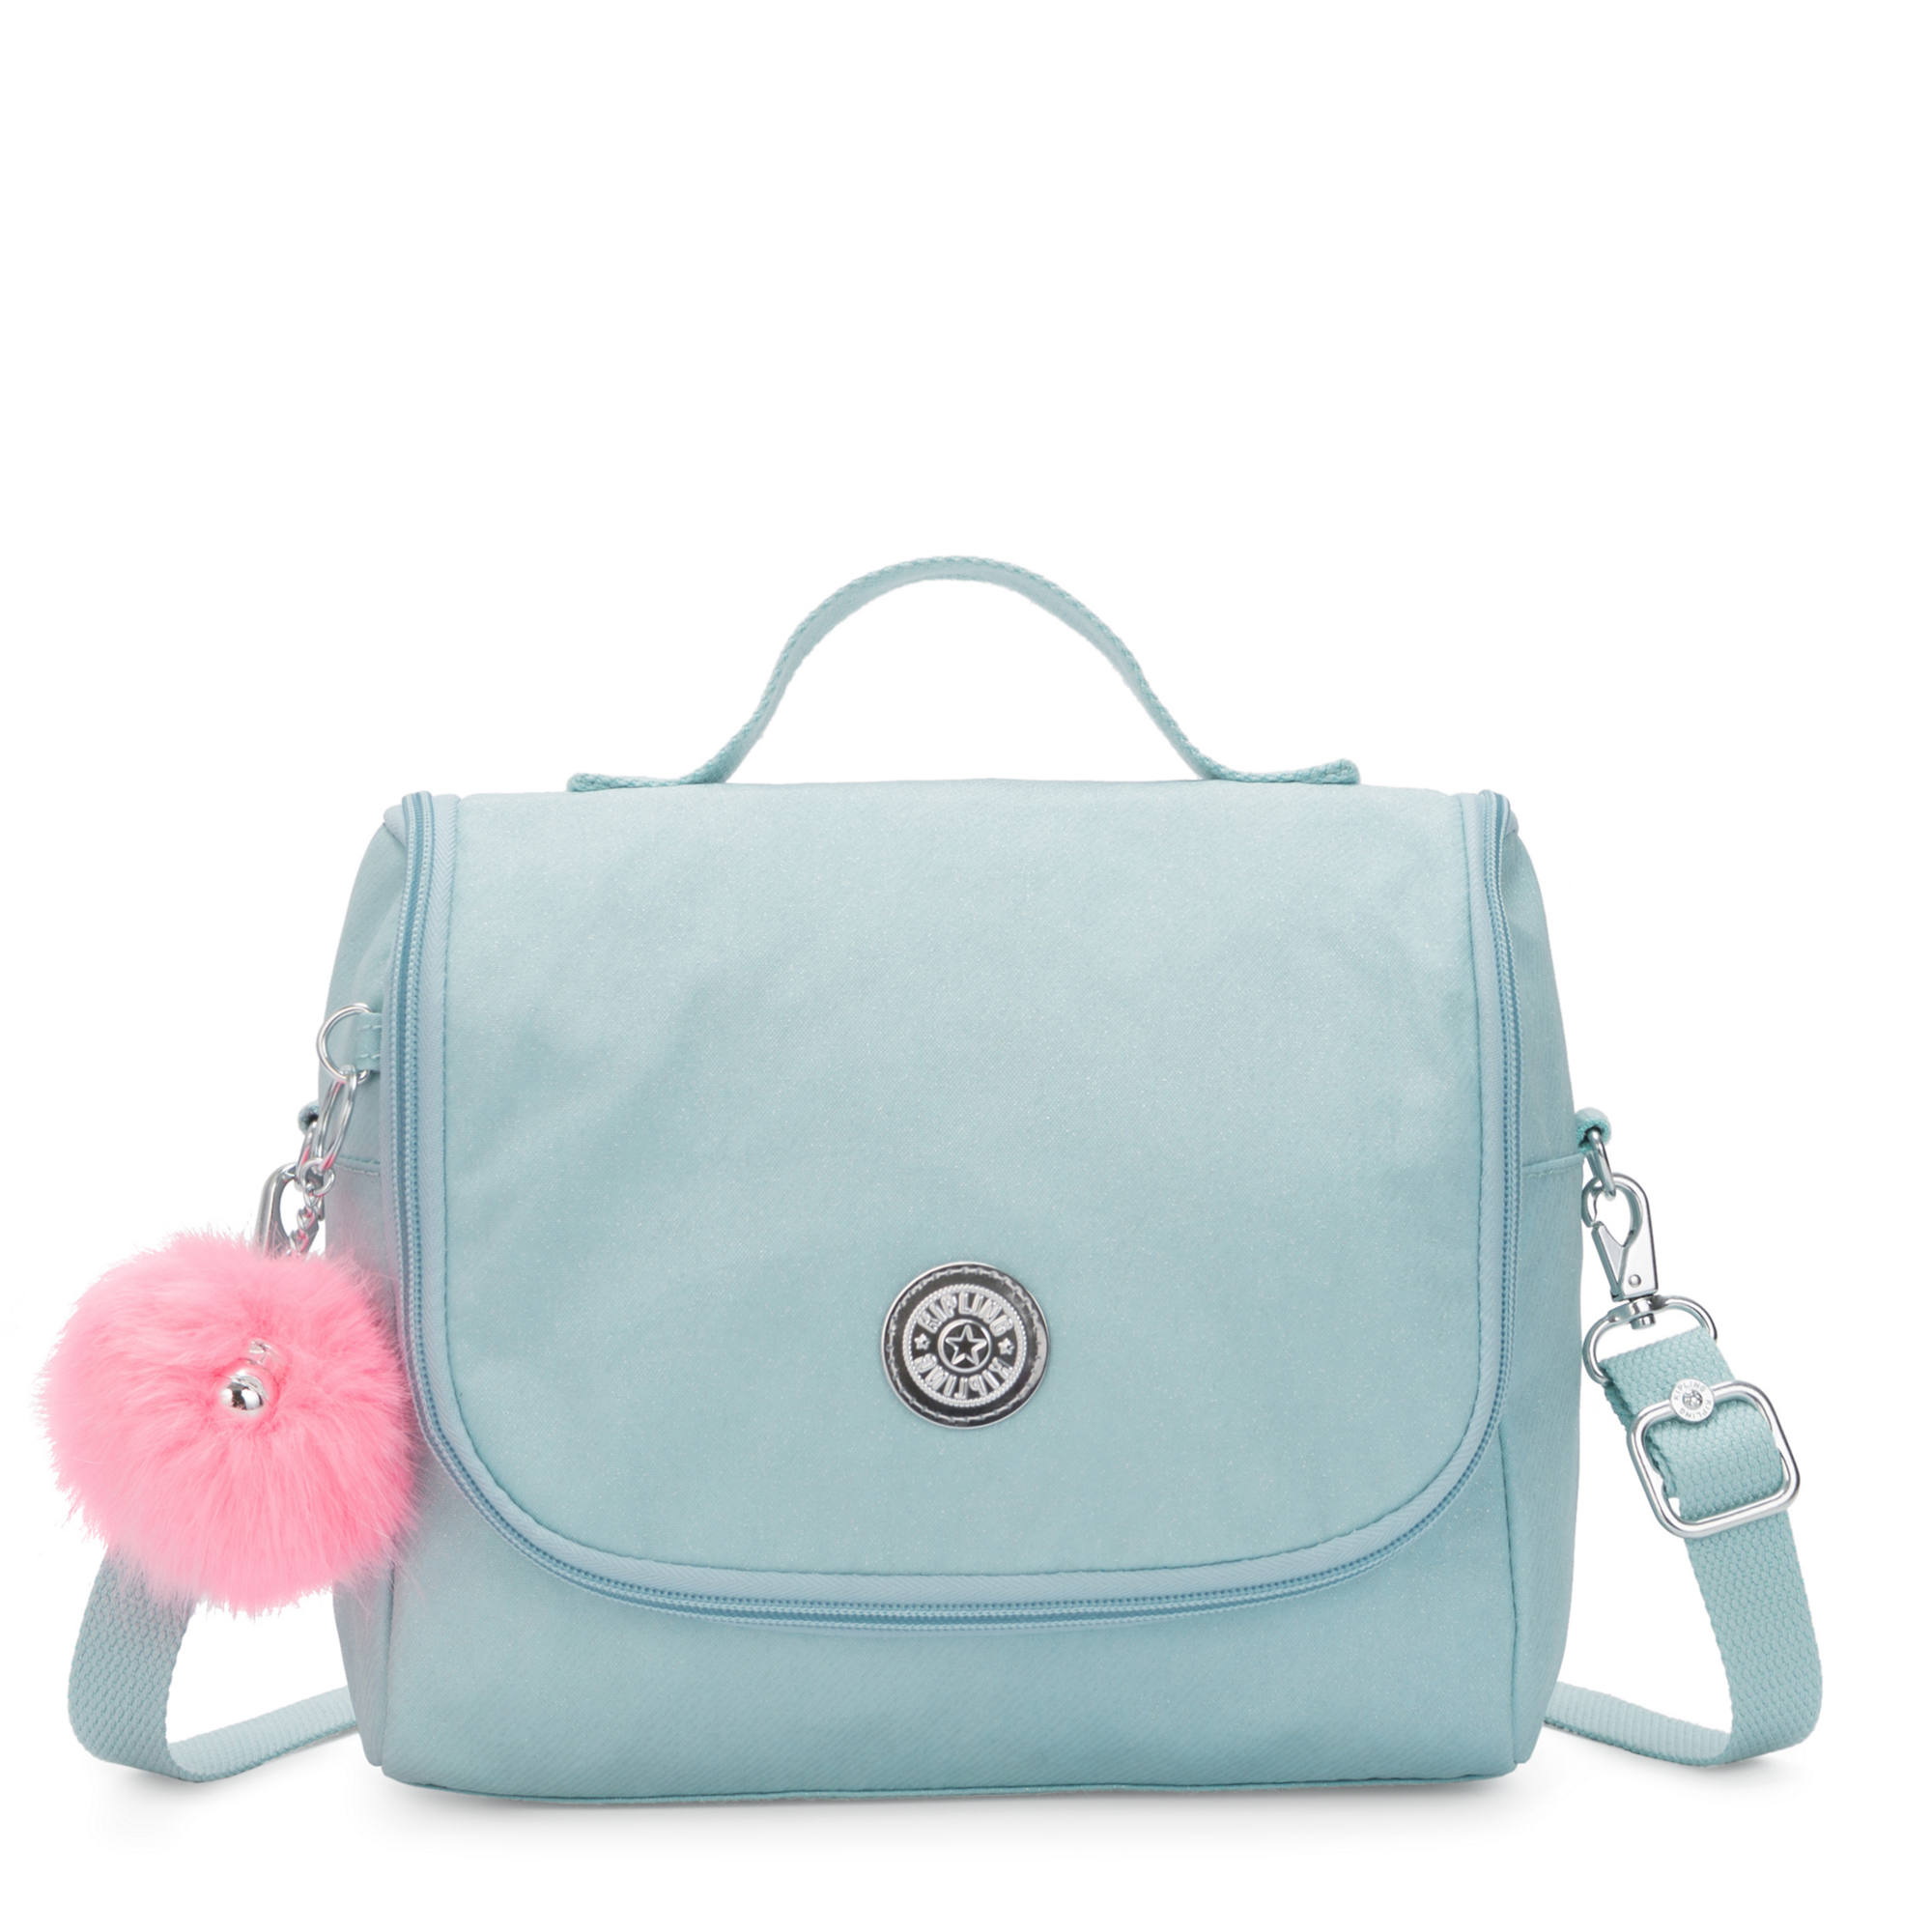 Kichirou Lunch Bag,Glimmer Teal,large-zoomed